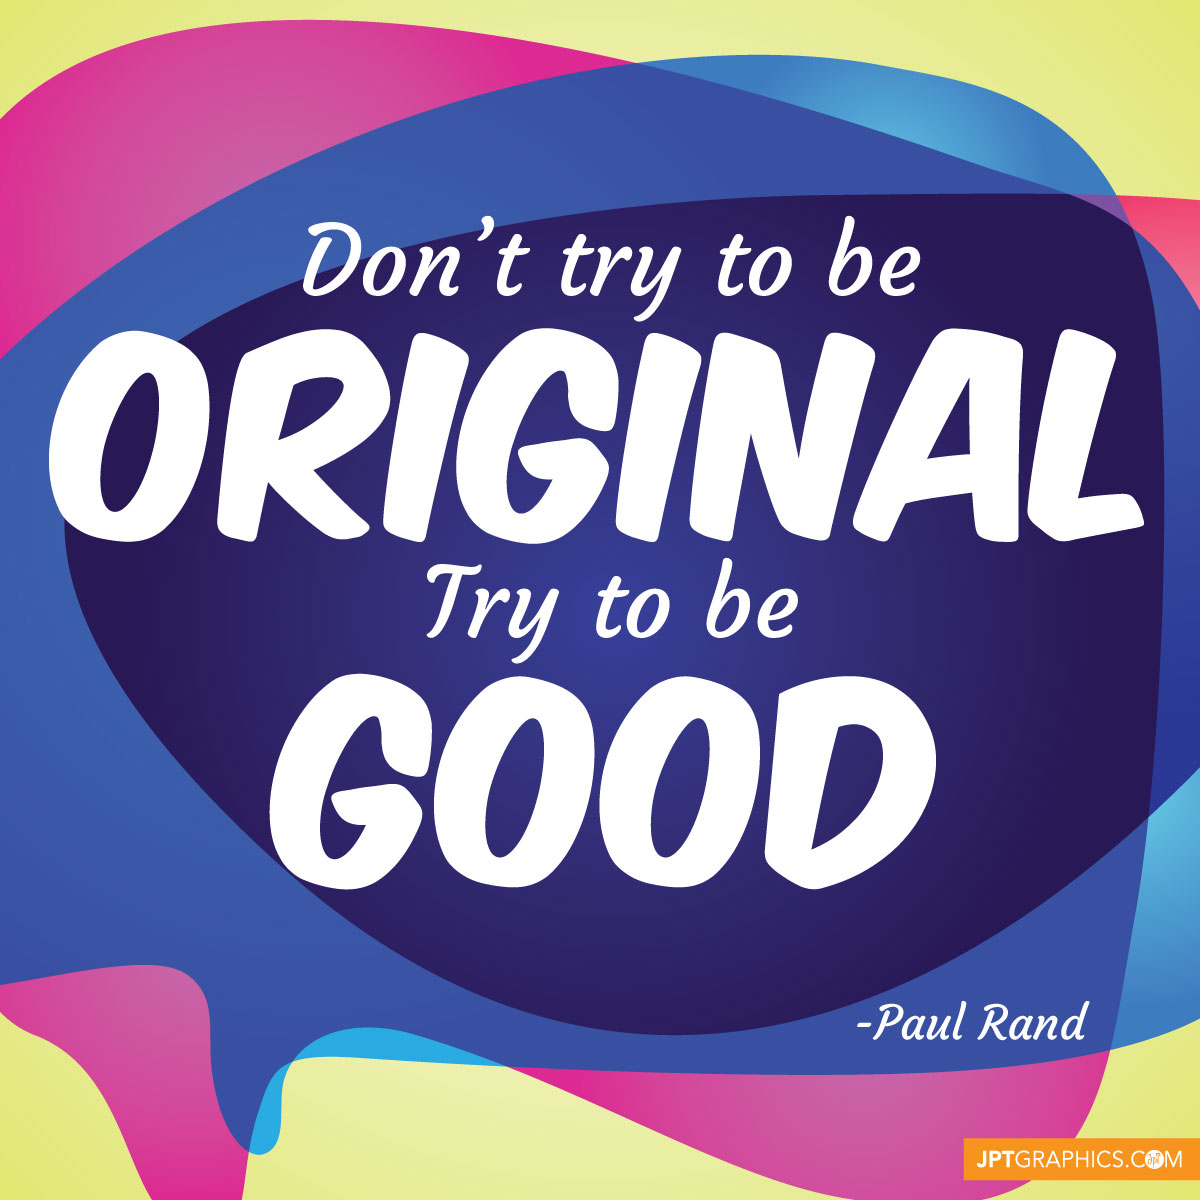 Don't try to be original, try to be good - Paul Rand